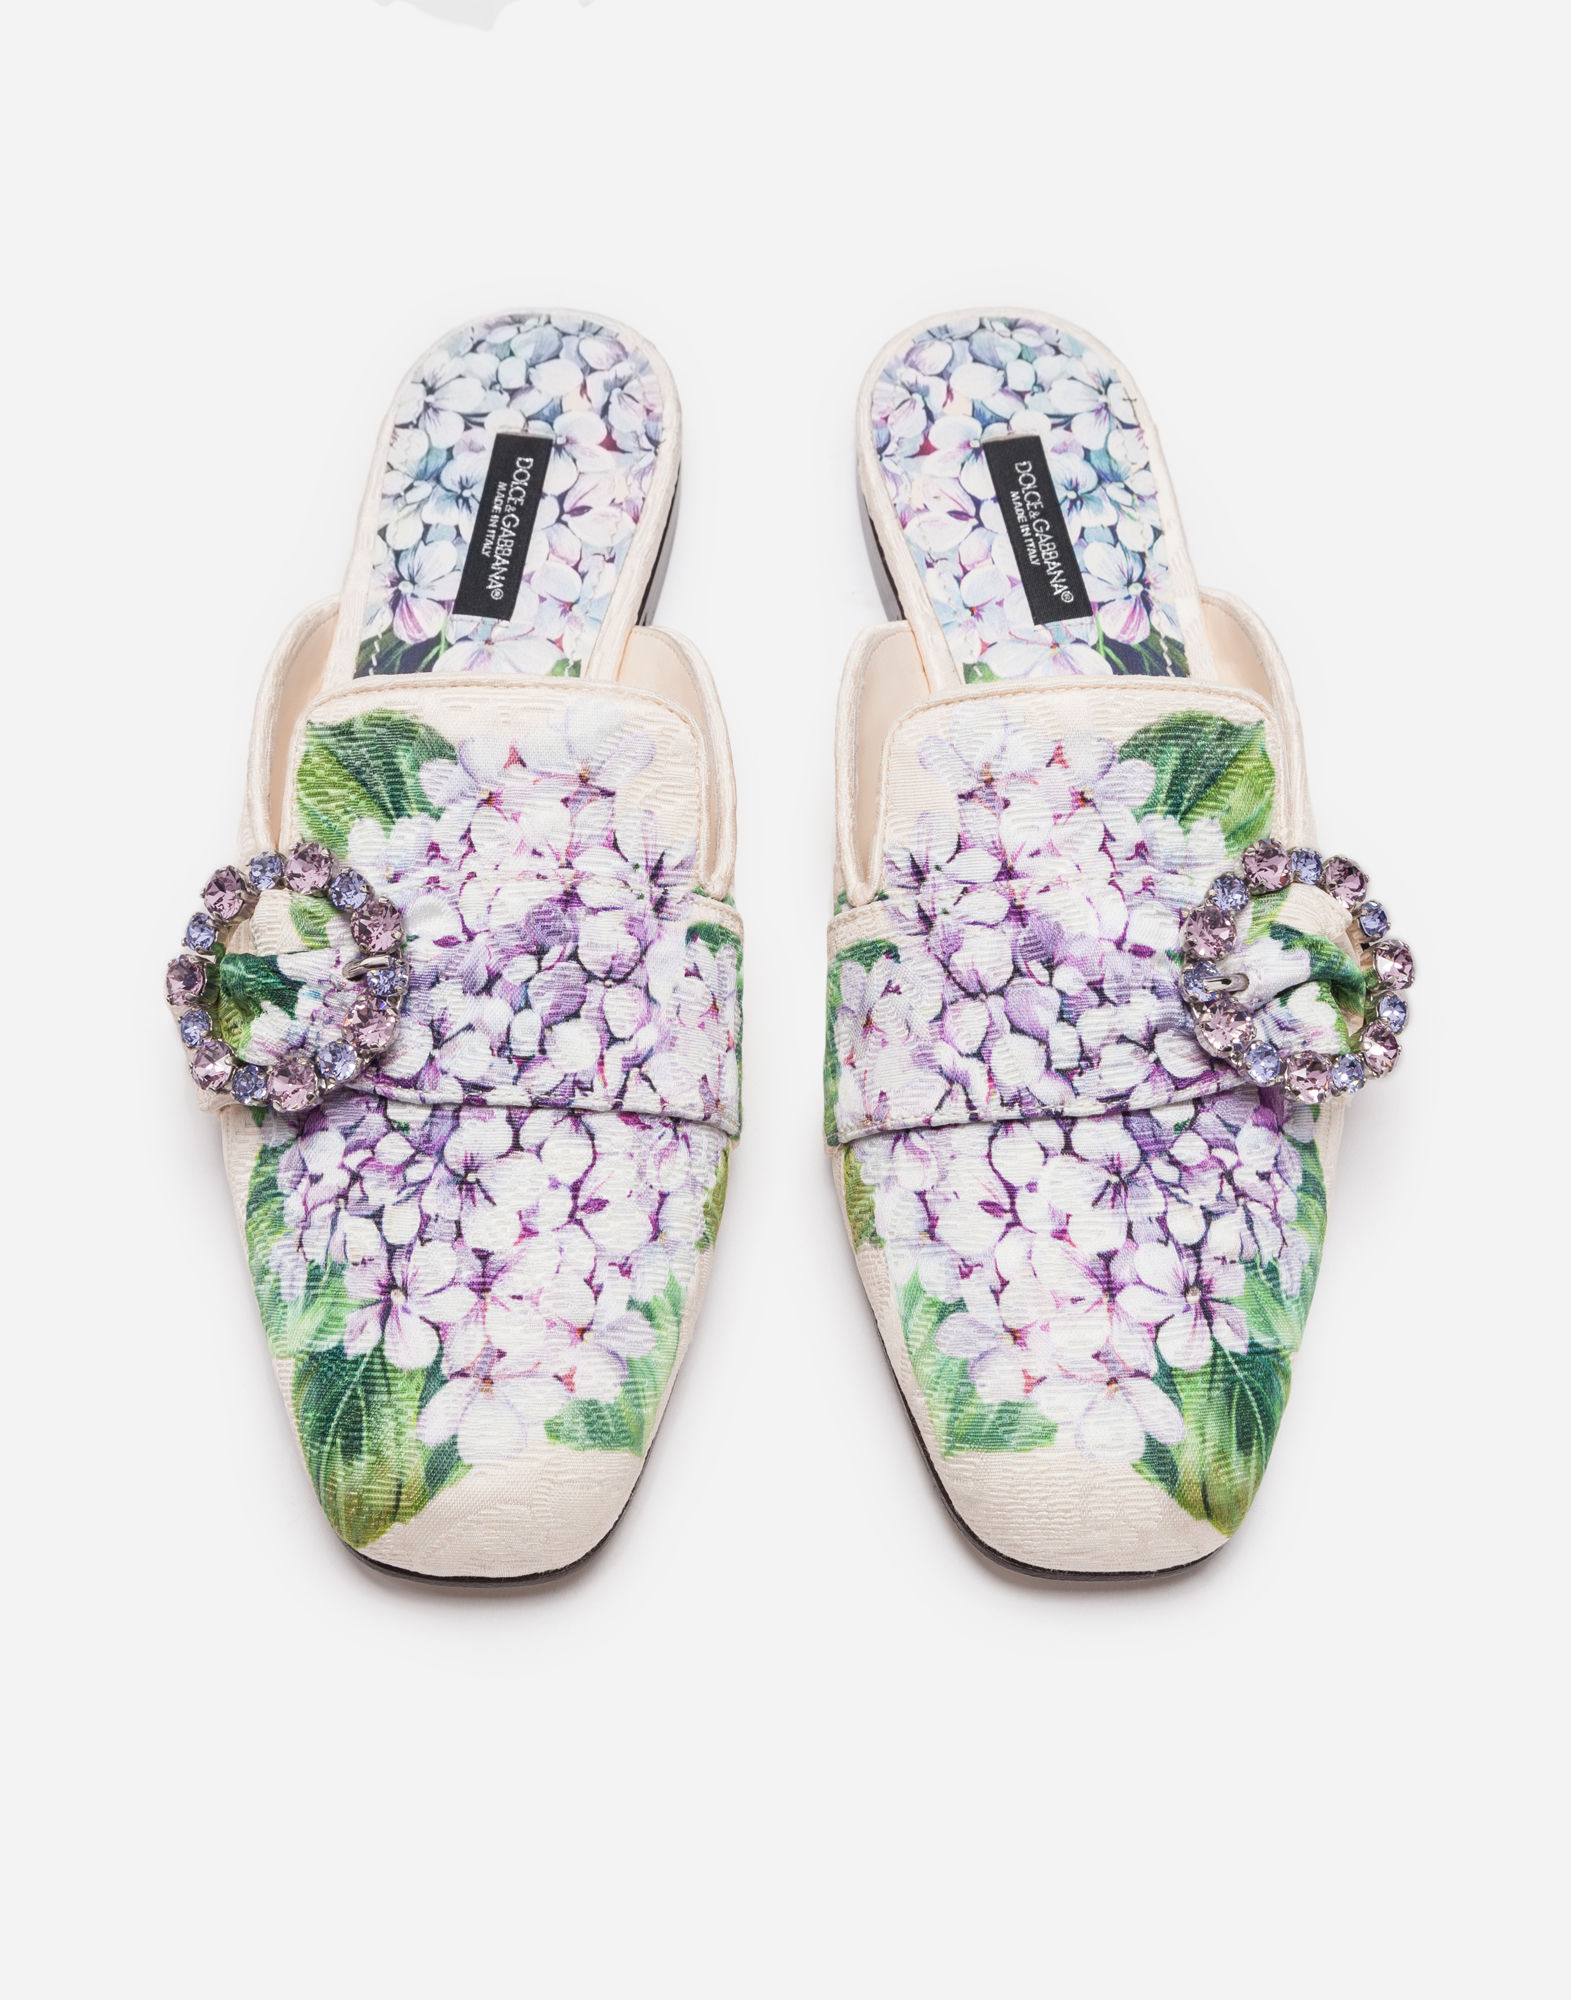 4d23accf1 DOLCE   GABBANA-Printed Brocade Slippers with Bejeweled Buckle